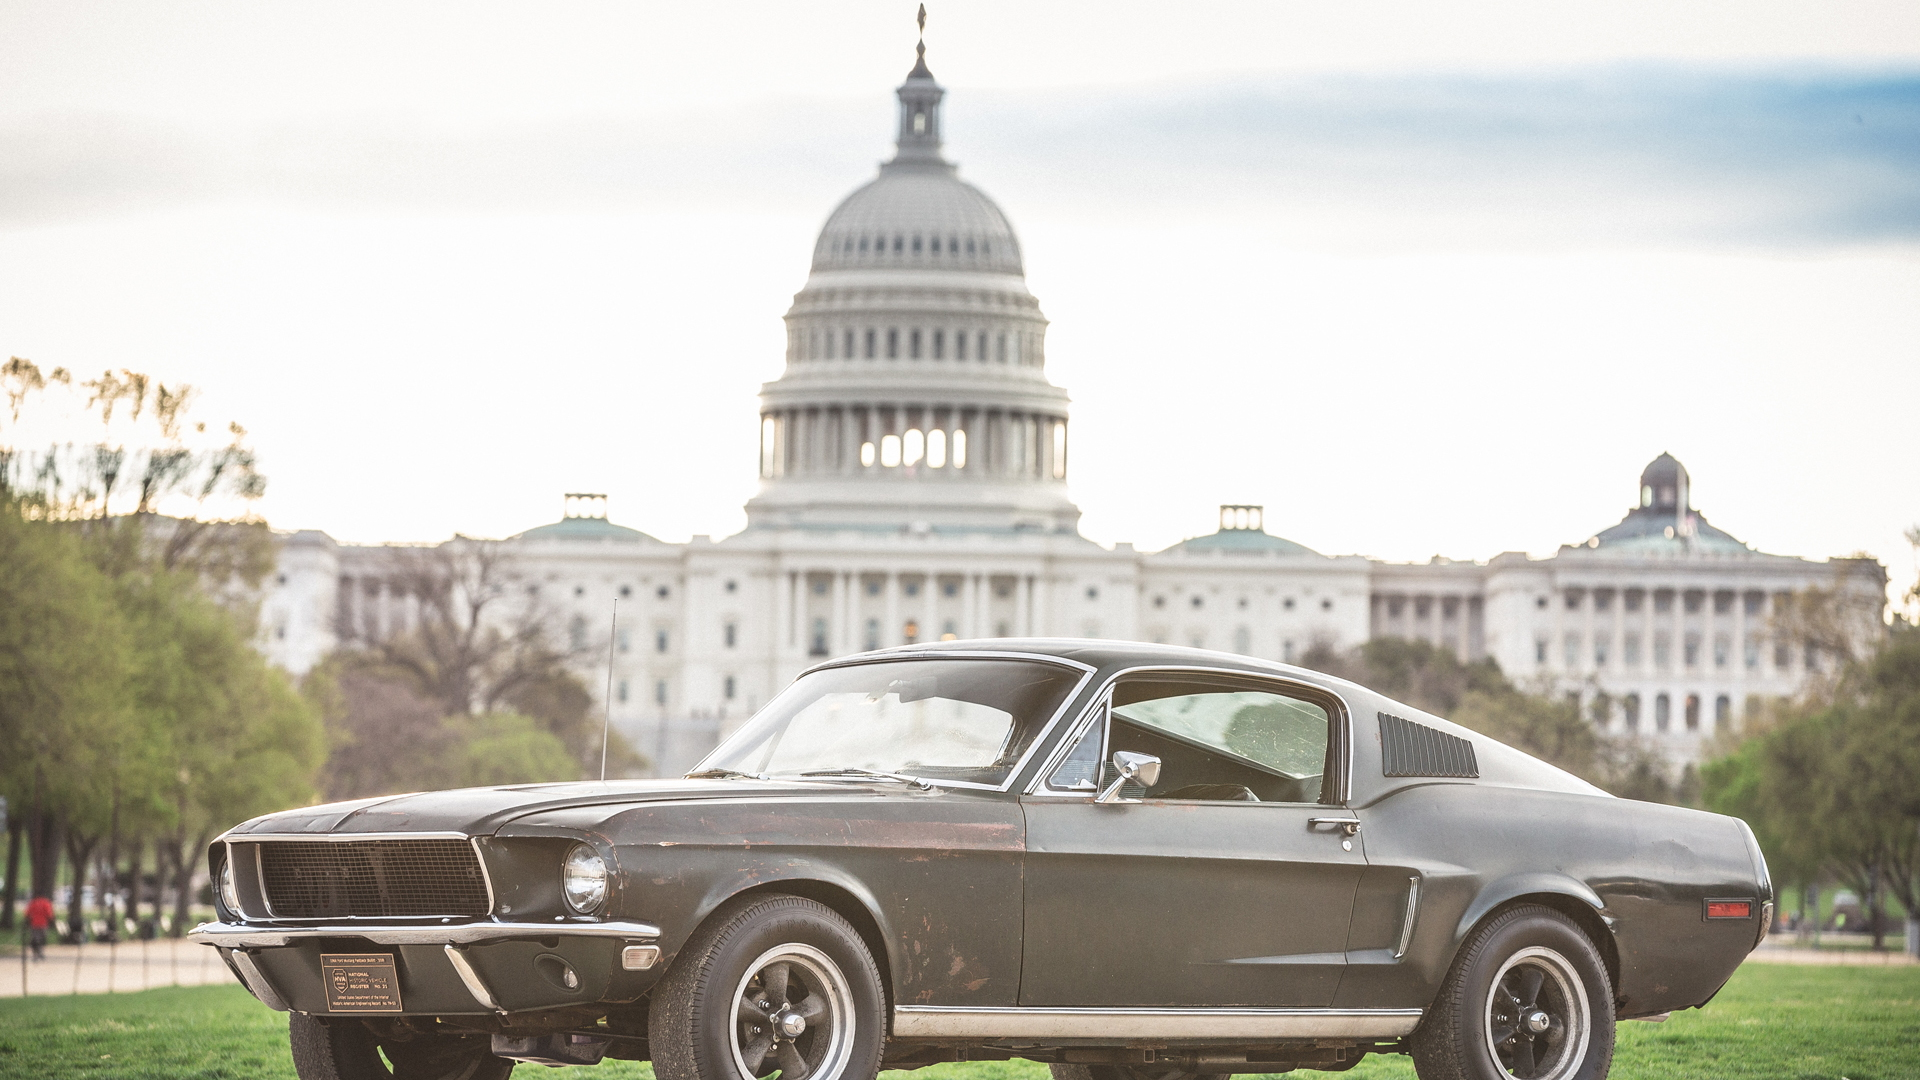 Iconic Mustang from Steve McQueen's 'Bullitt' is going up for auction